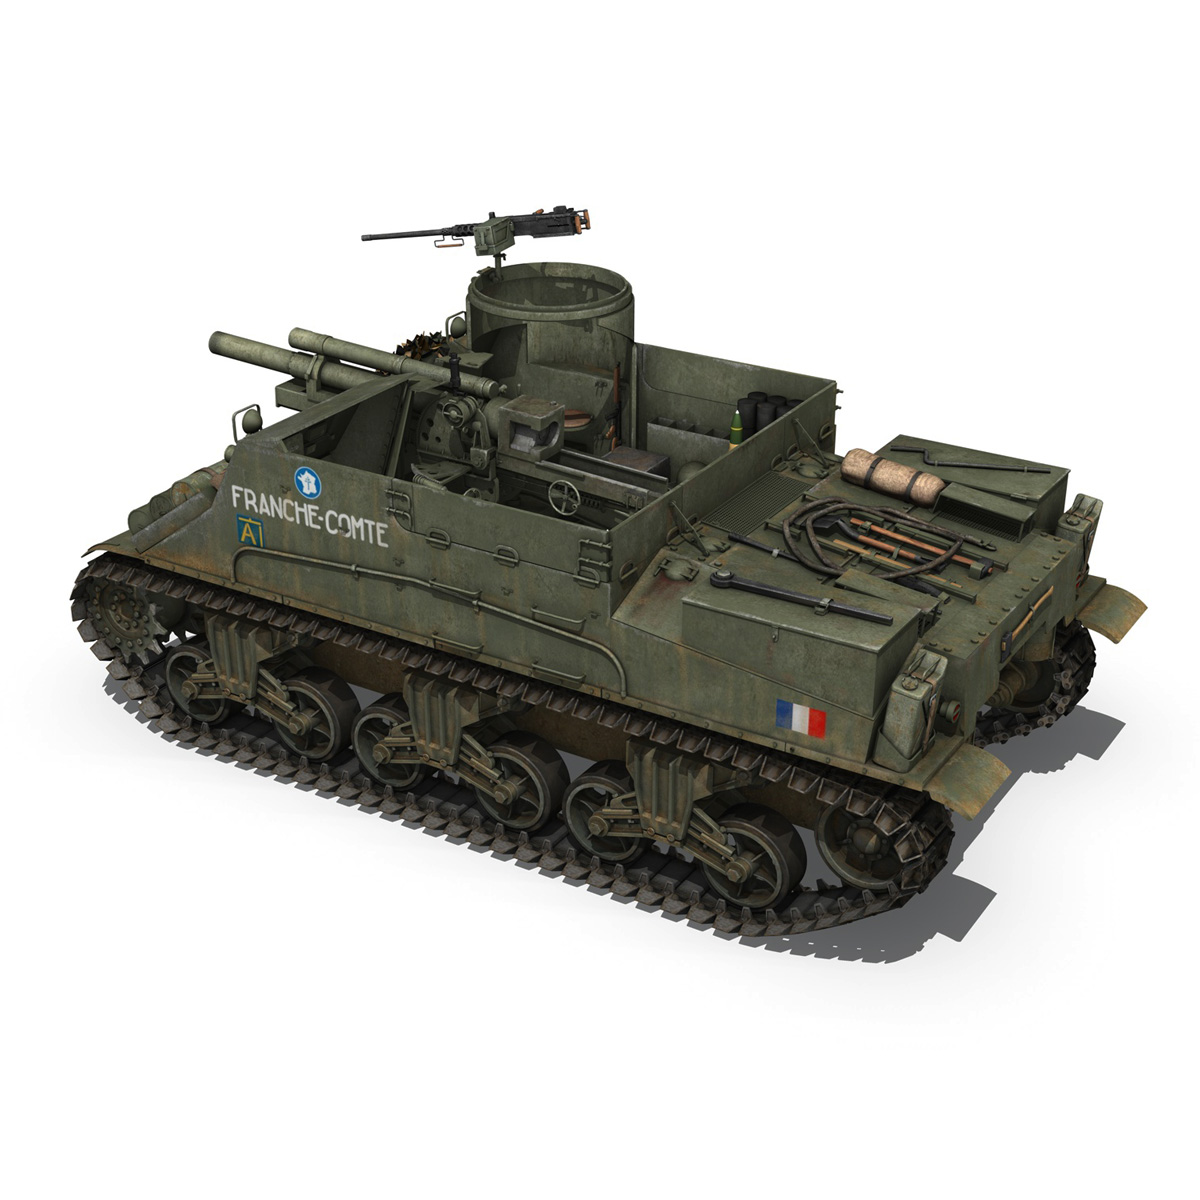 M7 Priest - Franche-Comte 3d model  265860